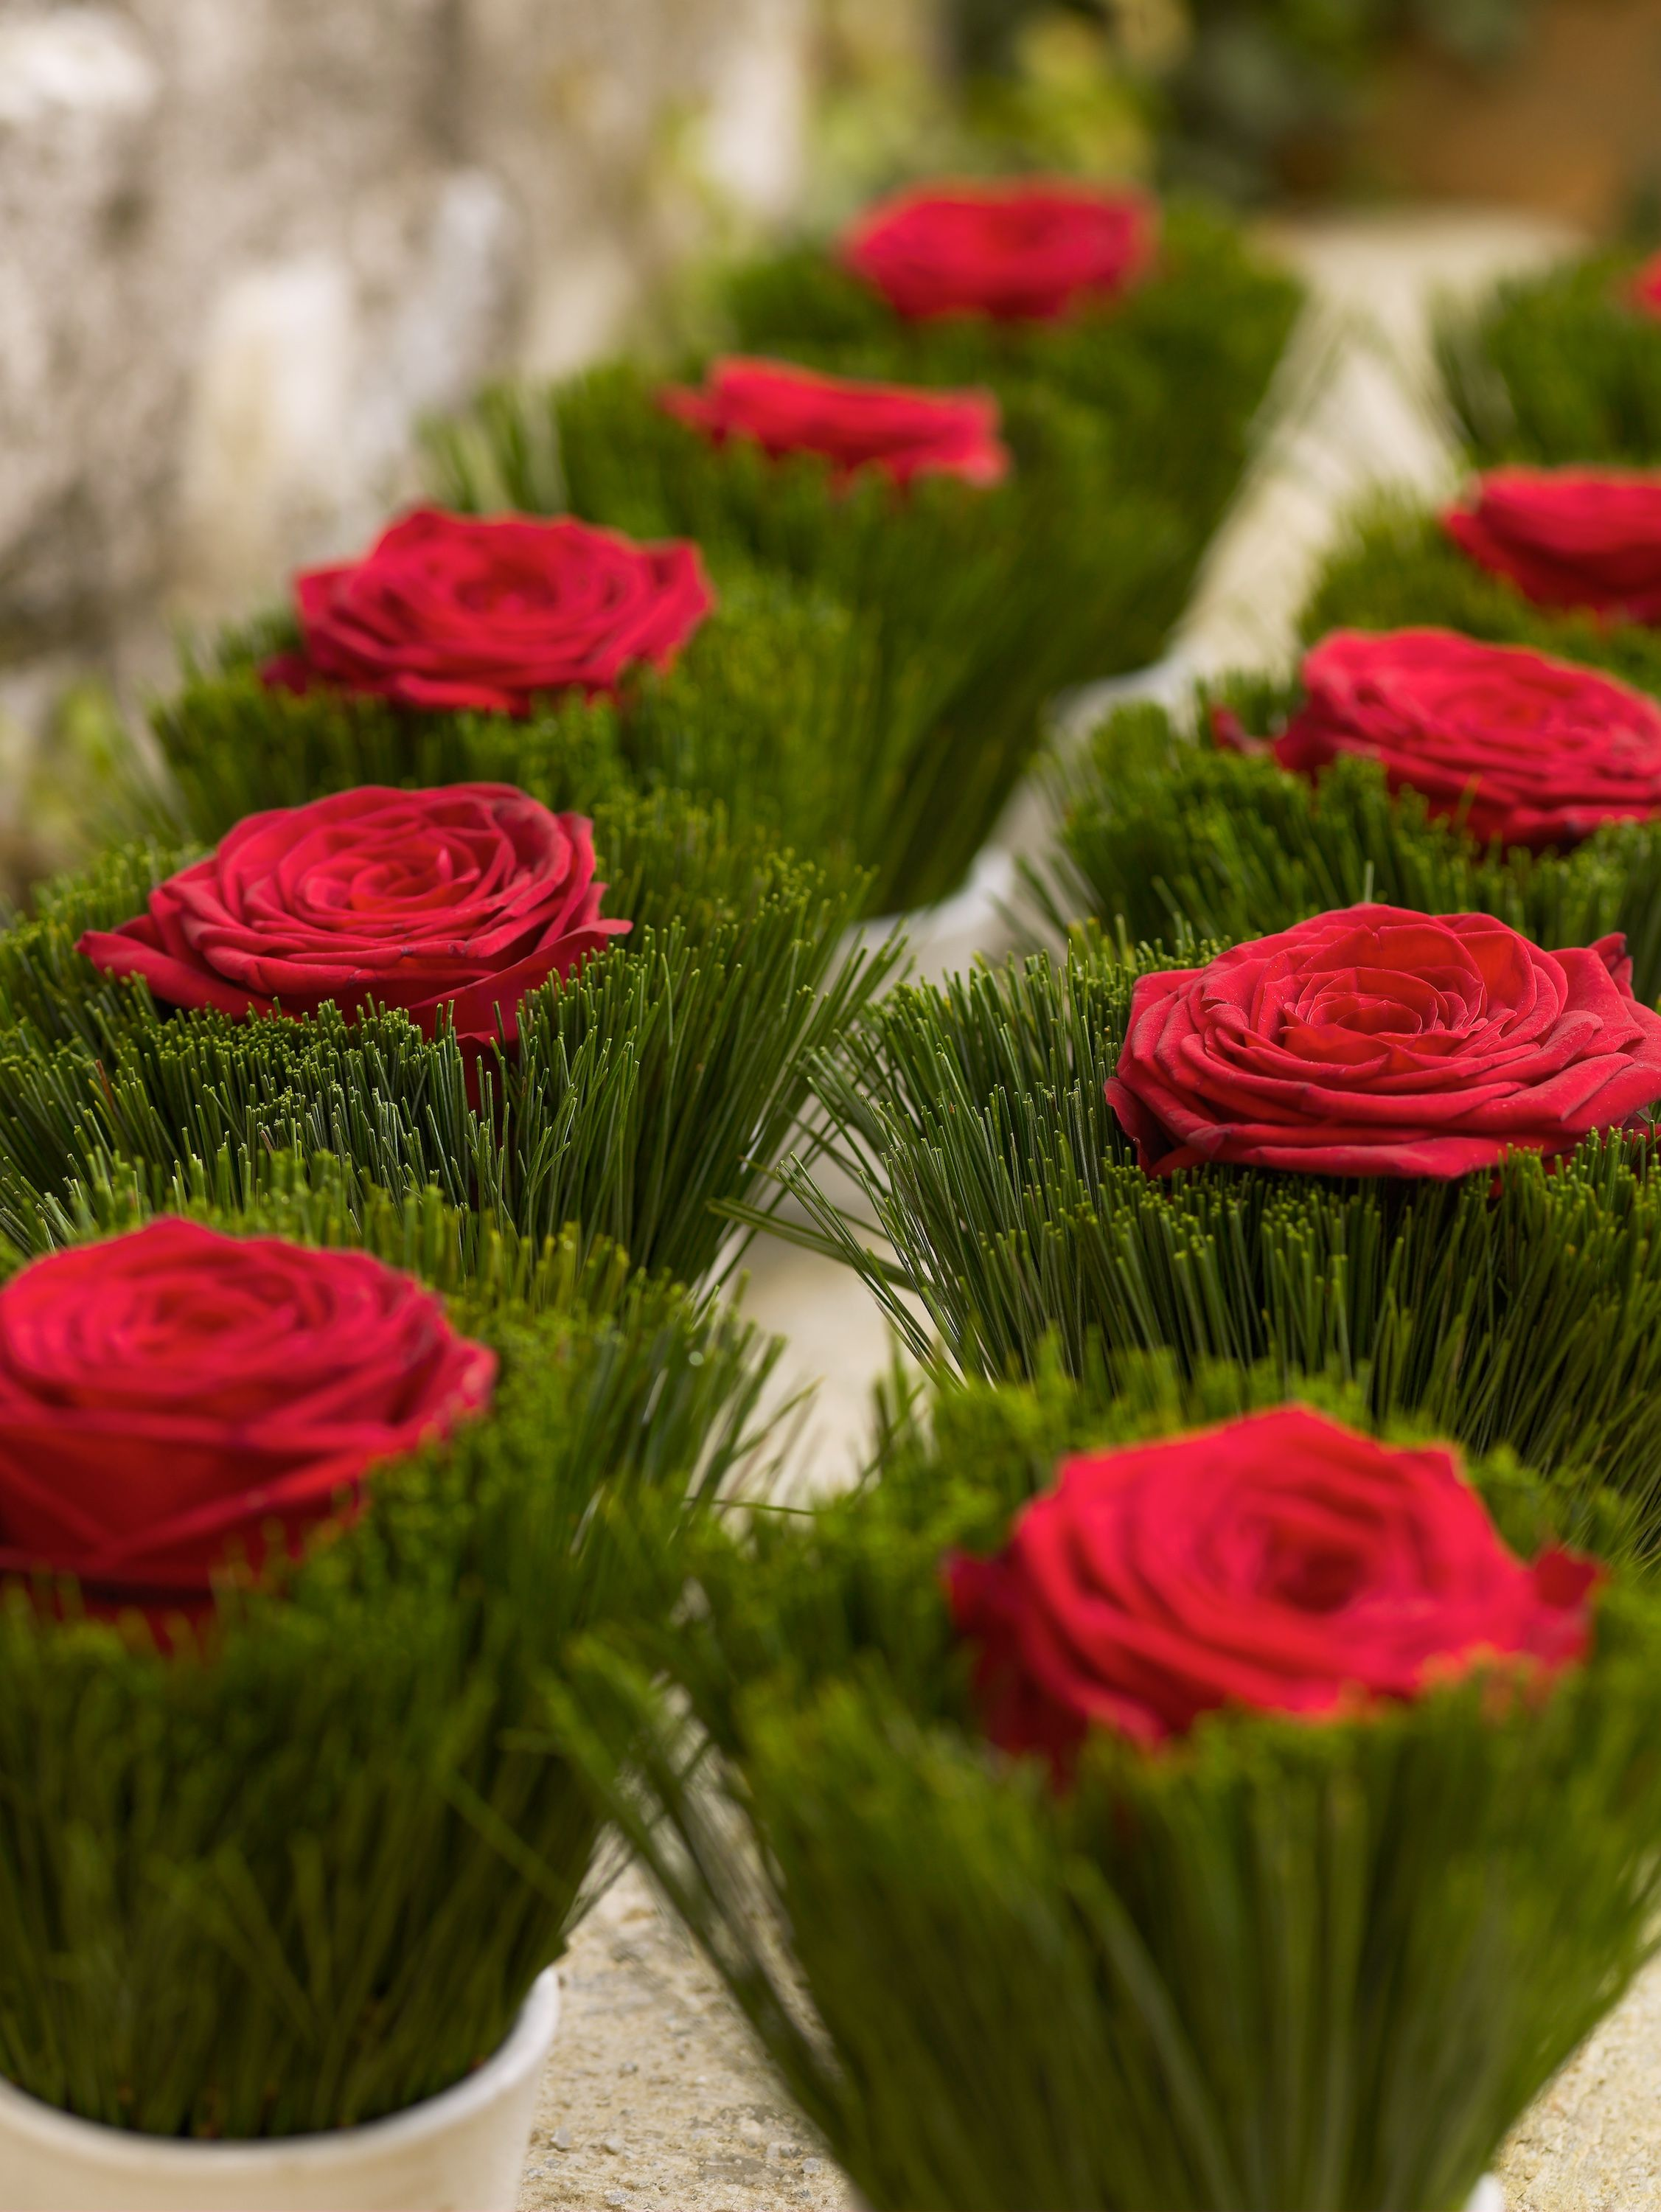 Festive floral table decoration element with red naomi roses by